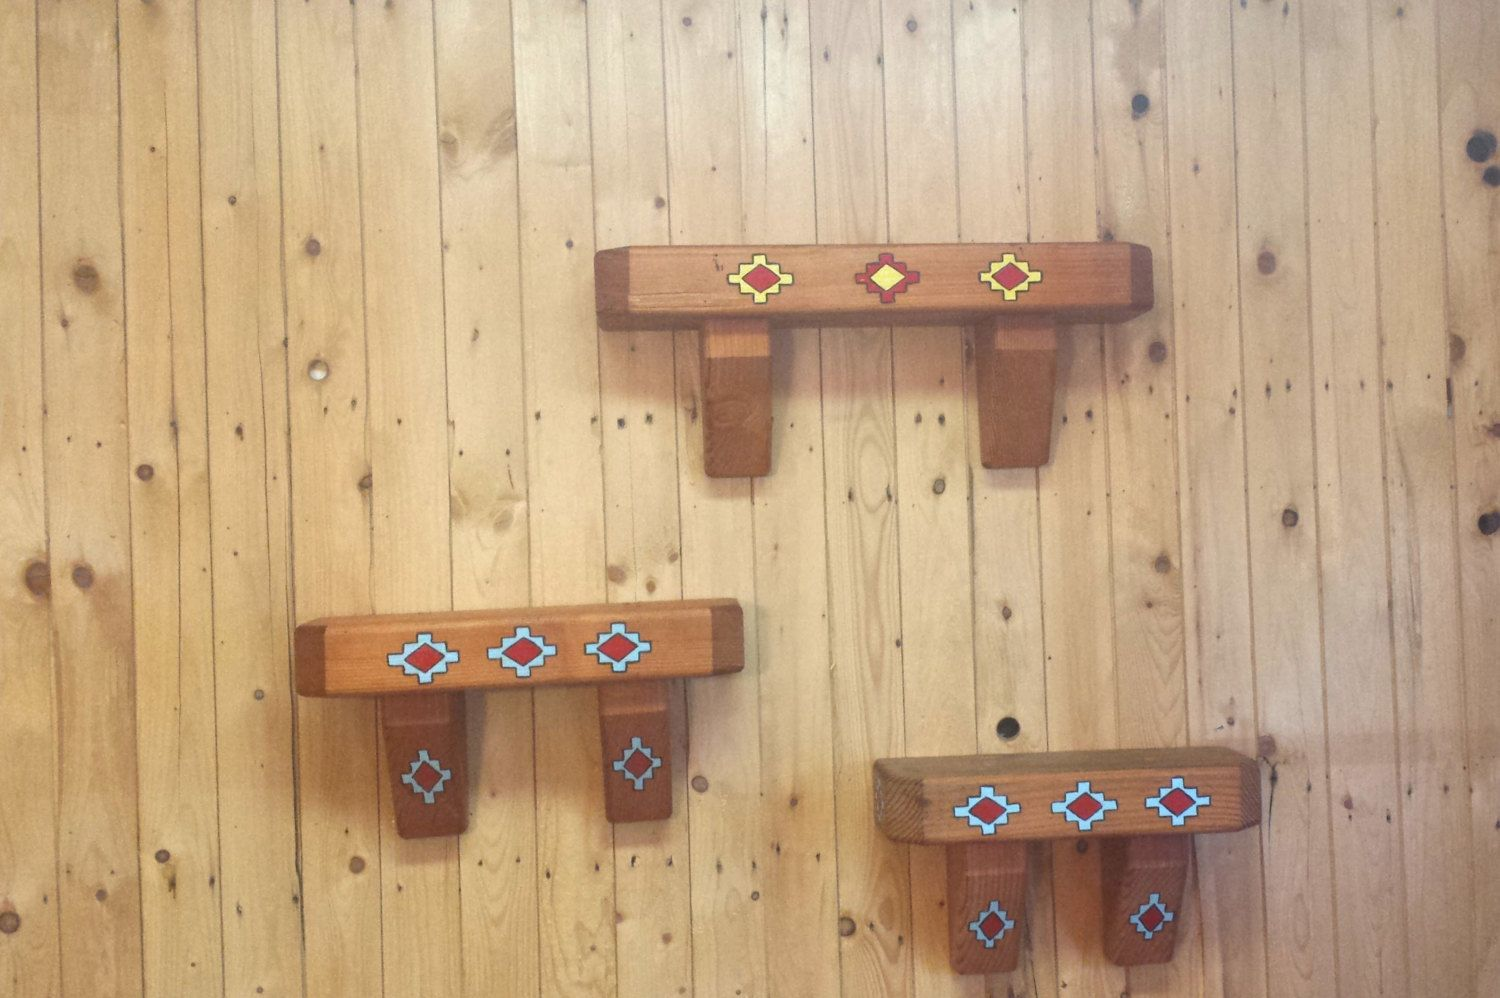 Indian, native american,tribal, wood, Douglas fir, shelves, wall art ...